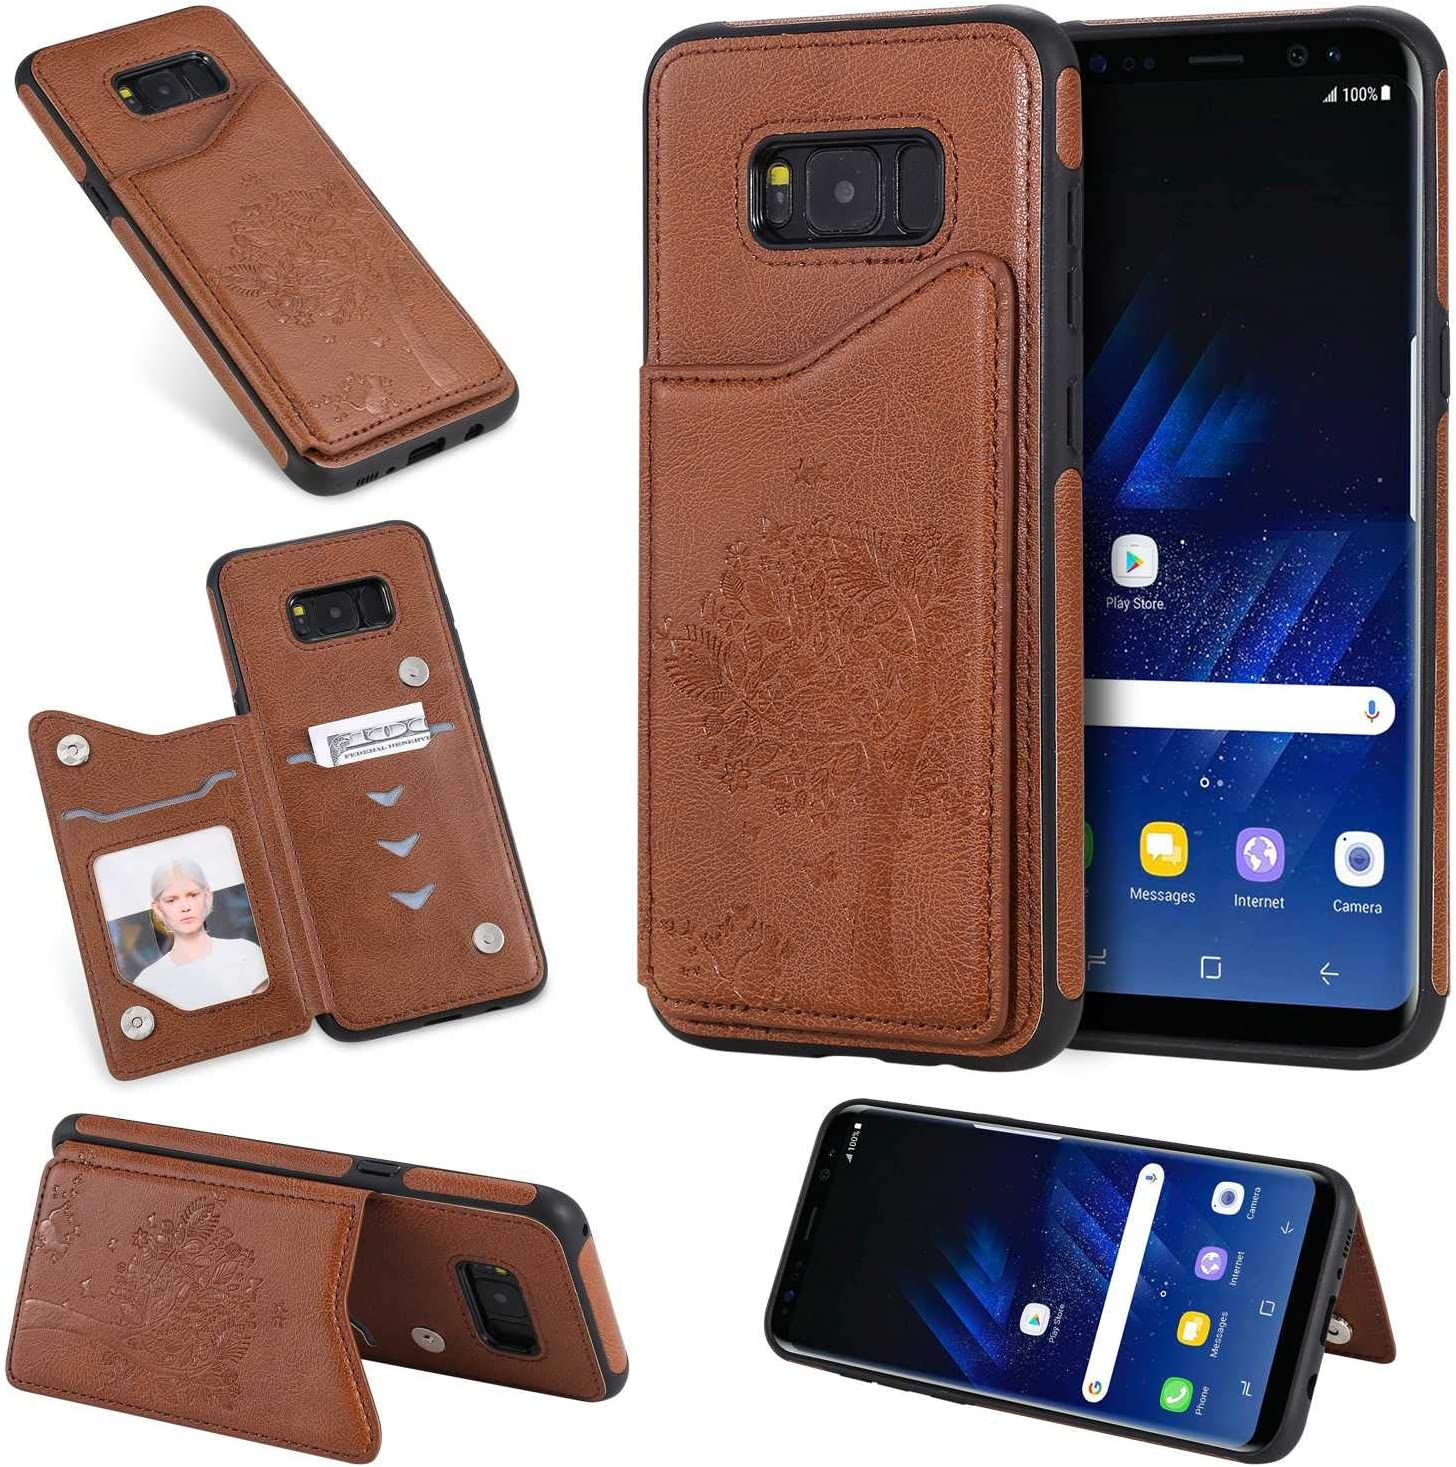 Premium Scratch Resistant PU Leather Folding Protective Case with Credit Card Slot for Samsung Galaxy S8 Plus Bear Village/® Ultra Thin Galaxy S8 Plus Case Rose Gold